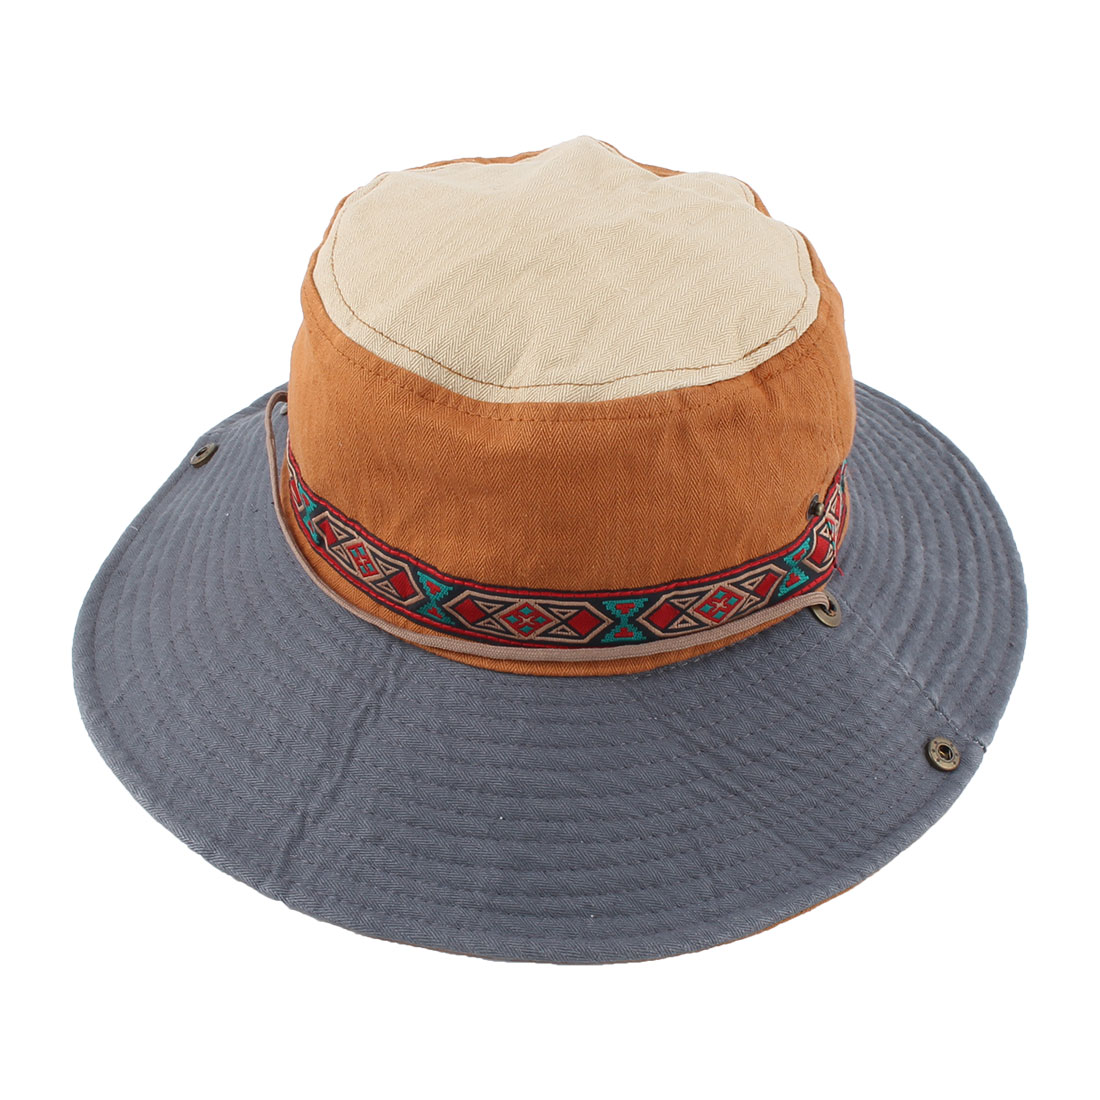 Fisherman Outdoor Fishing Hiking Cycling National Style Strap Wide Brimmed Floppy Cap Bucket Hat Brown